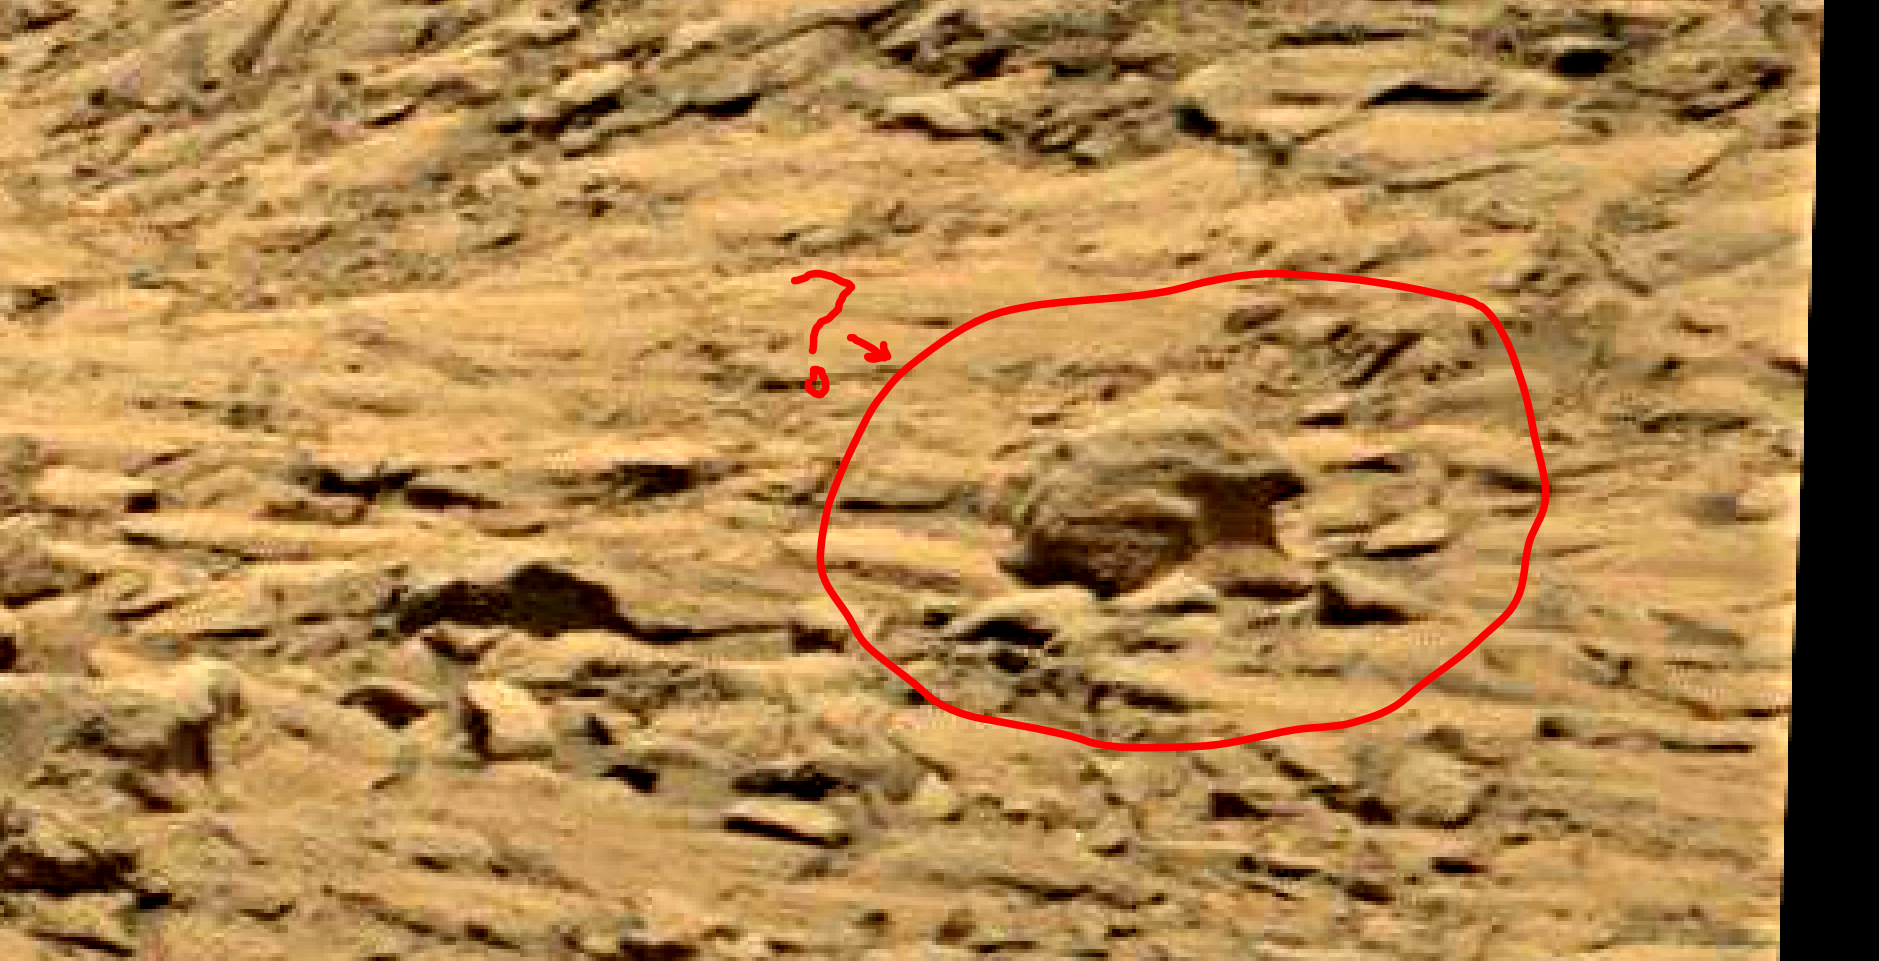 mars sol 1398 anomaly-artifacts 1 was life on mars